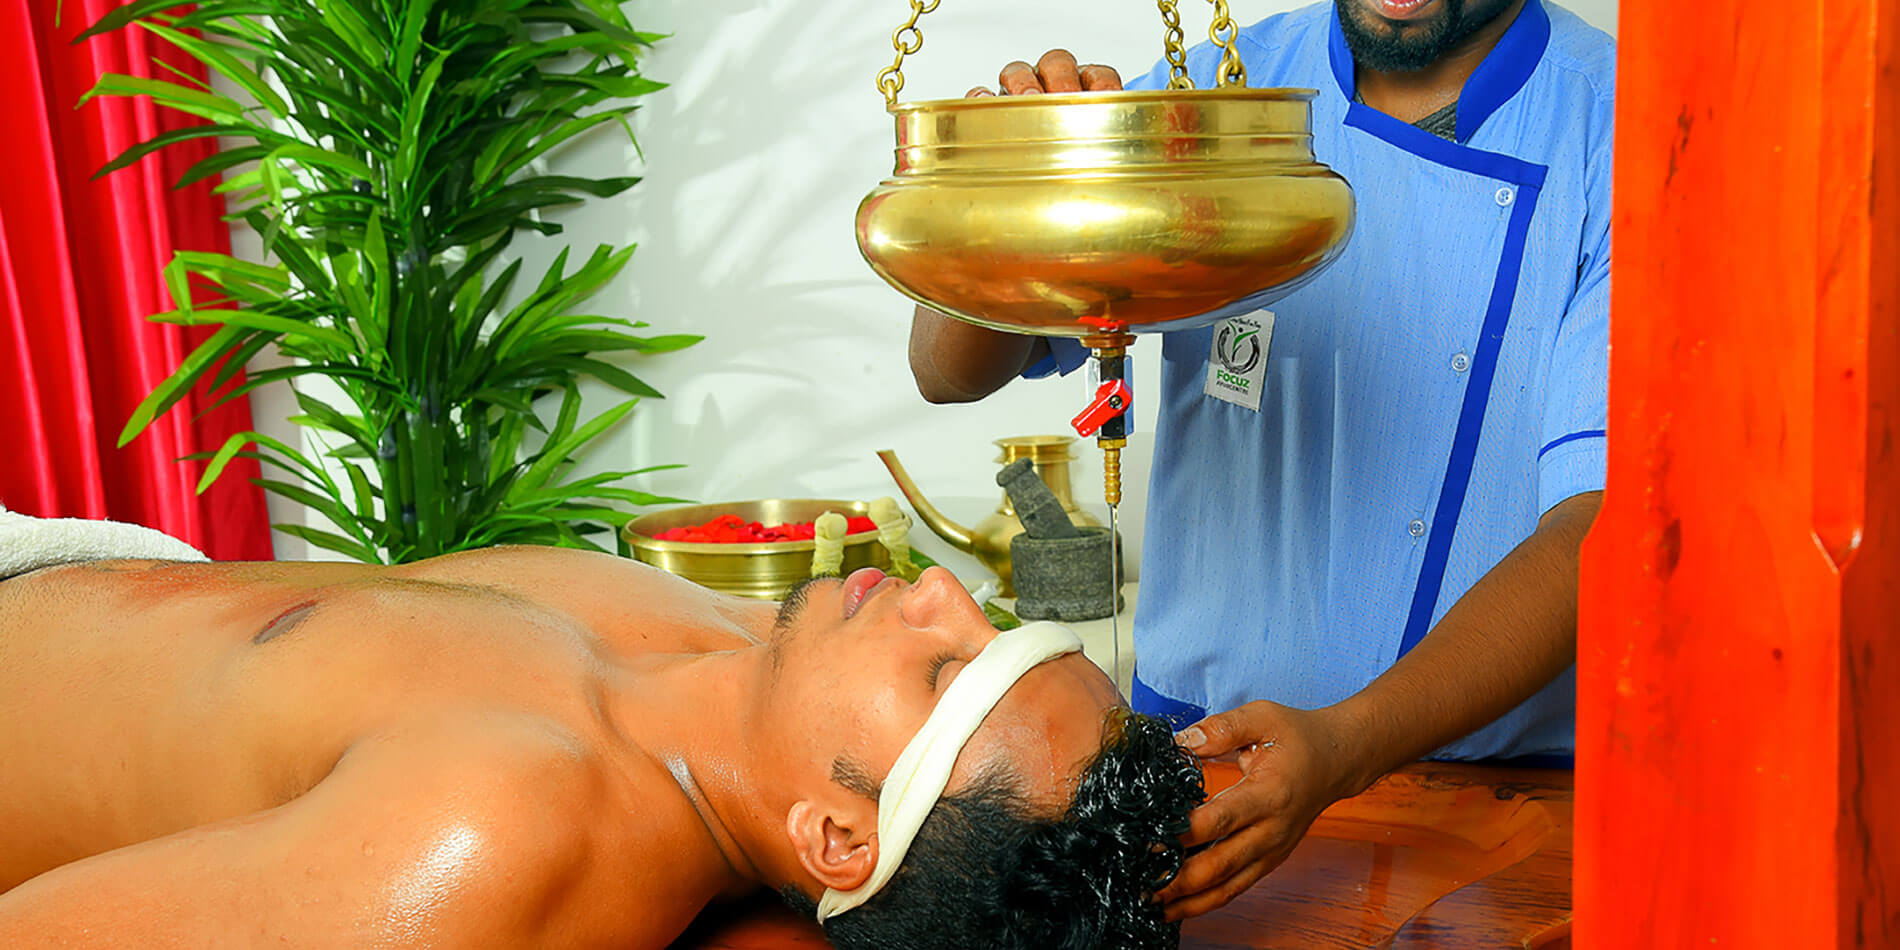 Shirodhara Ayurvedic Treatment Kerala, India